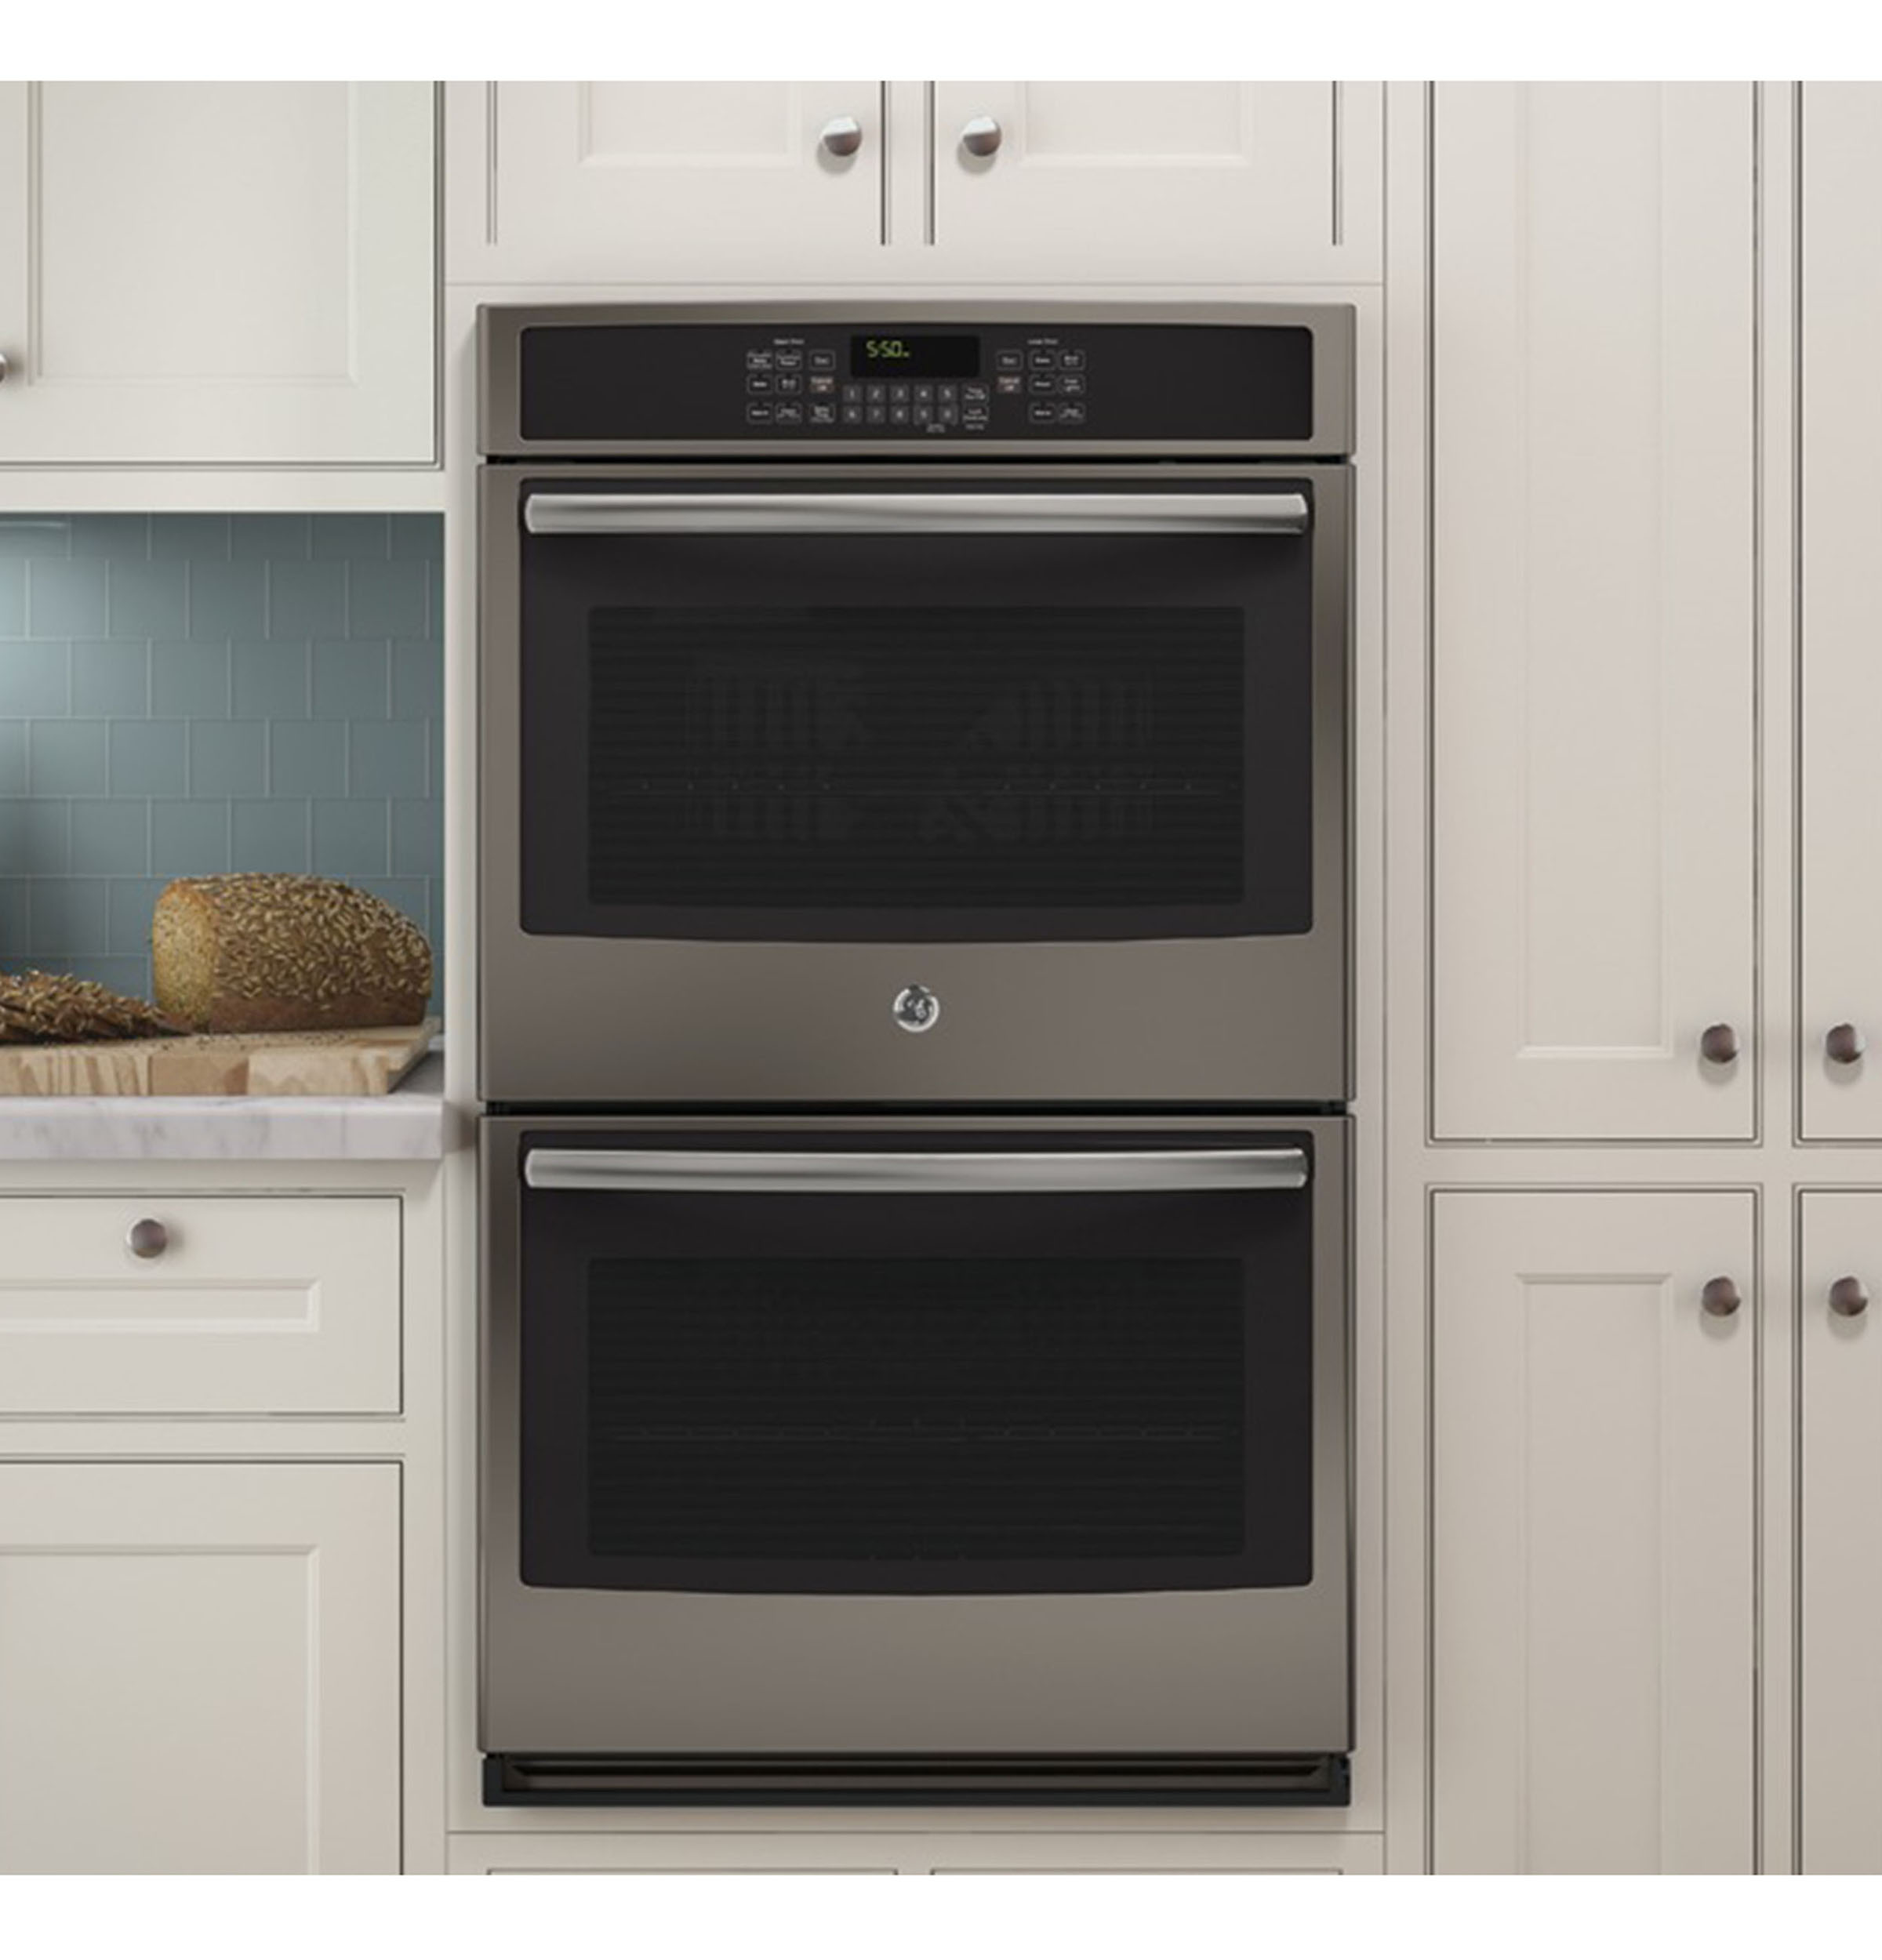 Ge 30 Built In Double Wall Oven With Convection